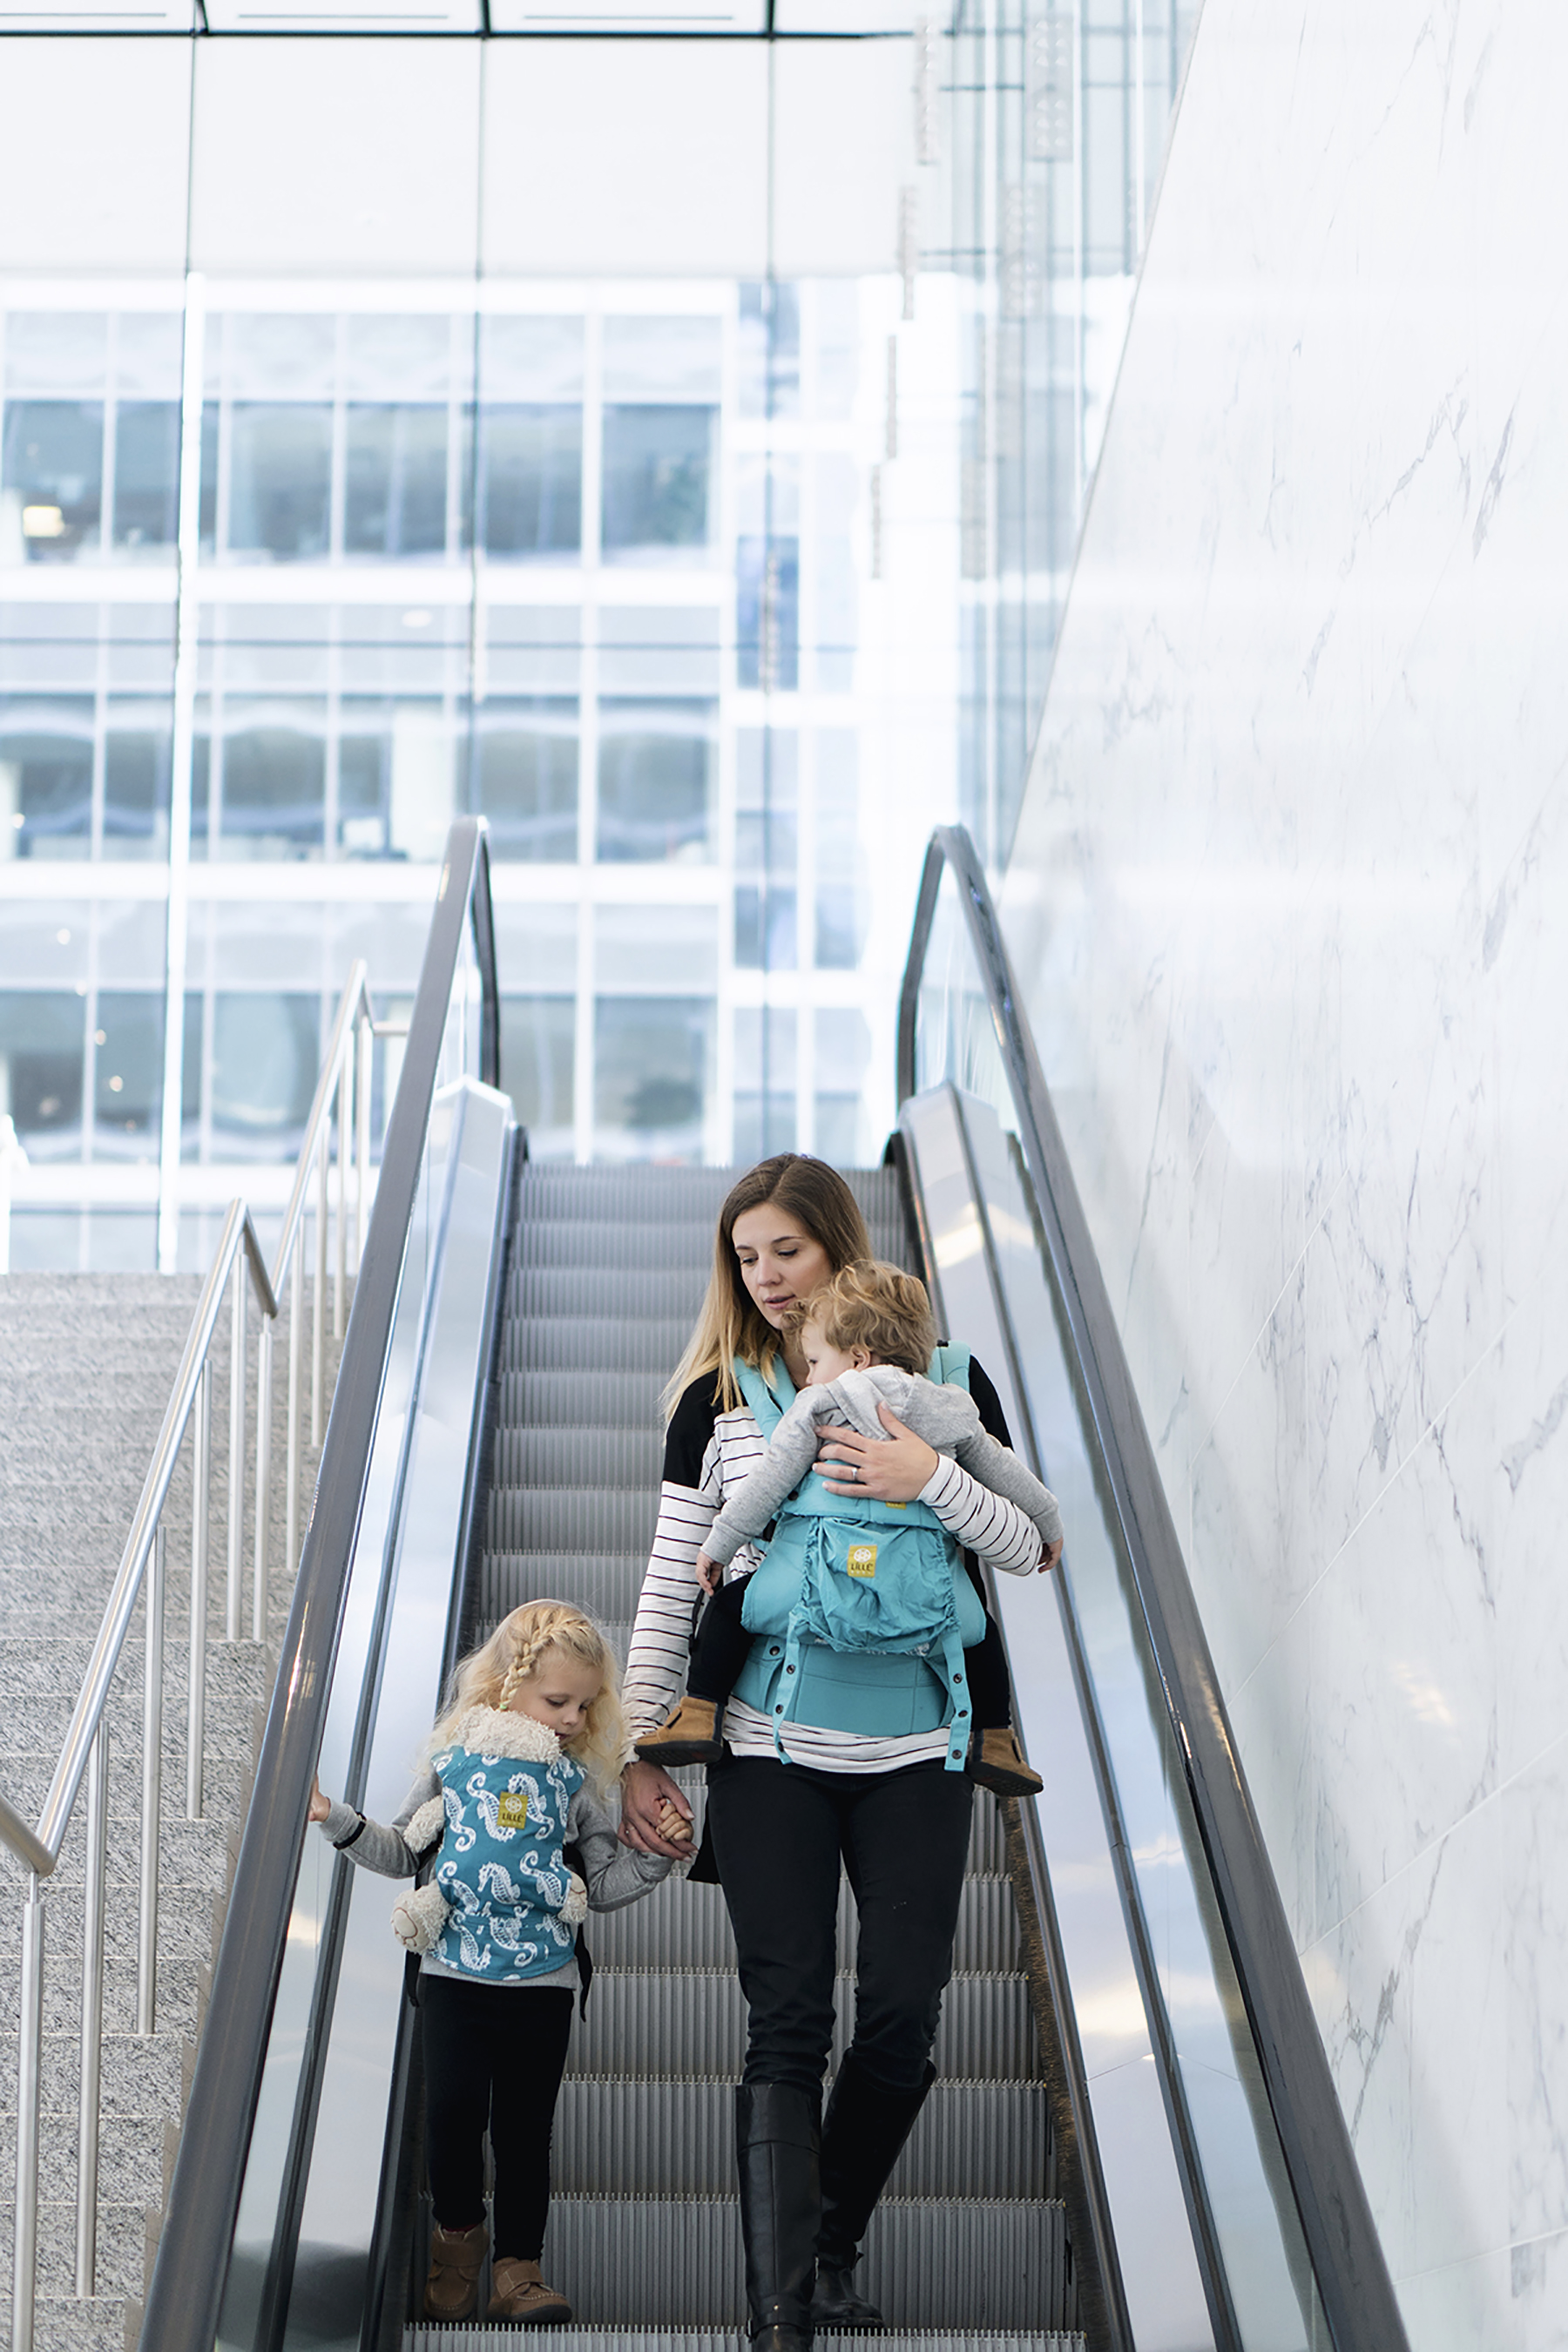 5 reasons to where your baby: benefits of babywearing with Lillebaby carriers